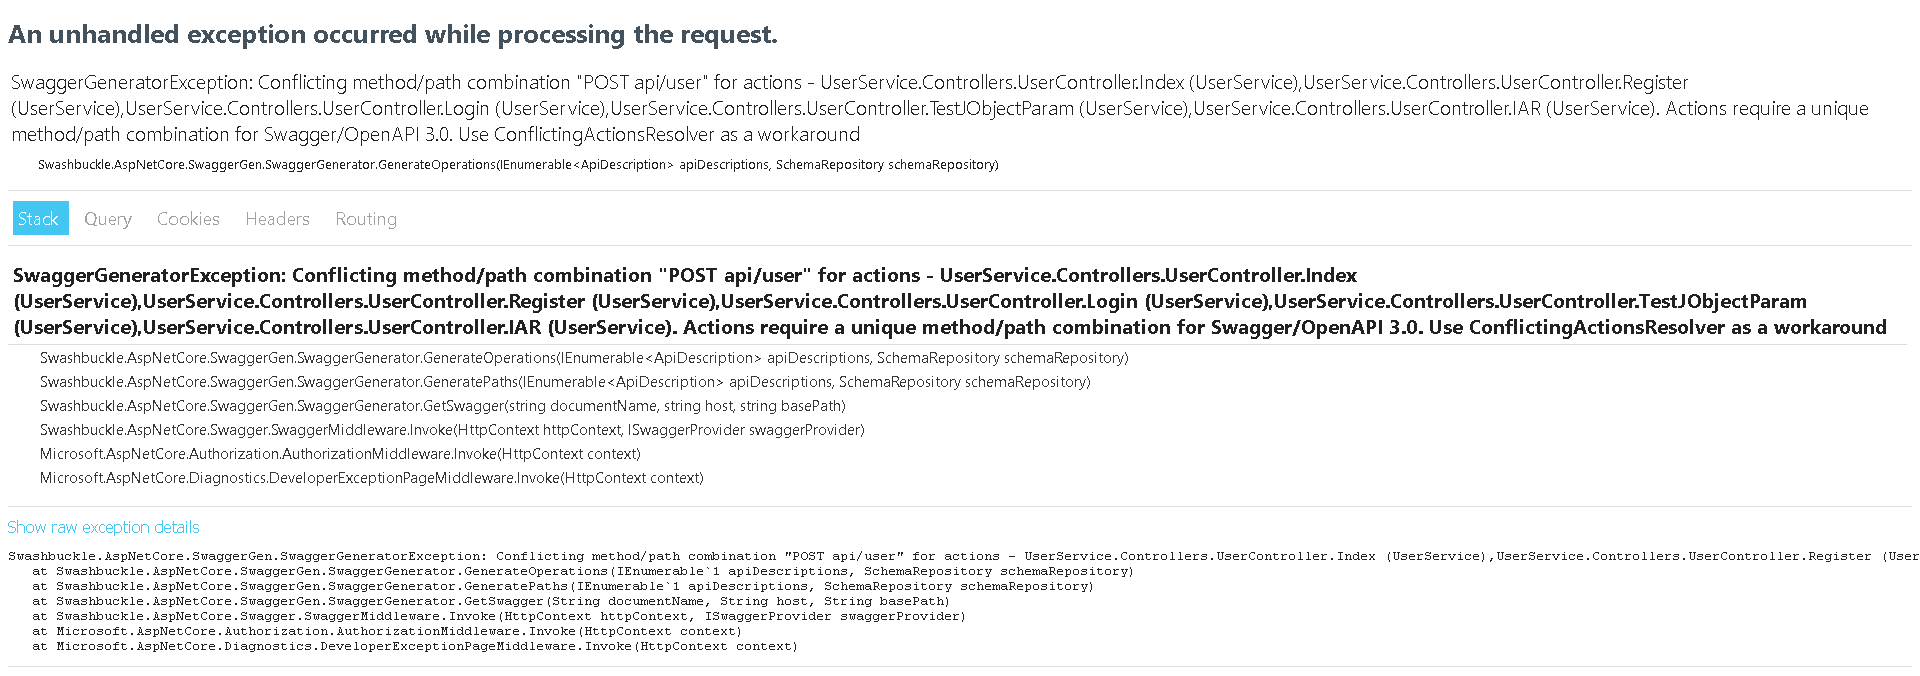 Actions require a unique method/path combination for Swagger/OpenAPI 3.0. Use ConflictingActionsResolver as a workaround